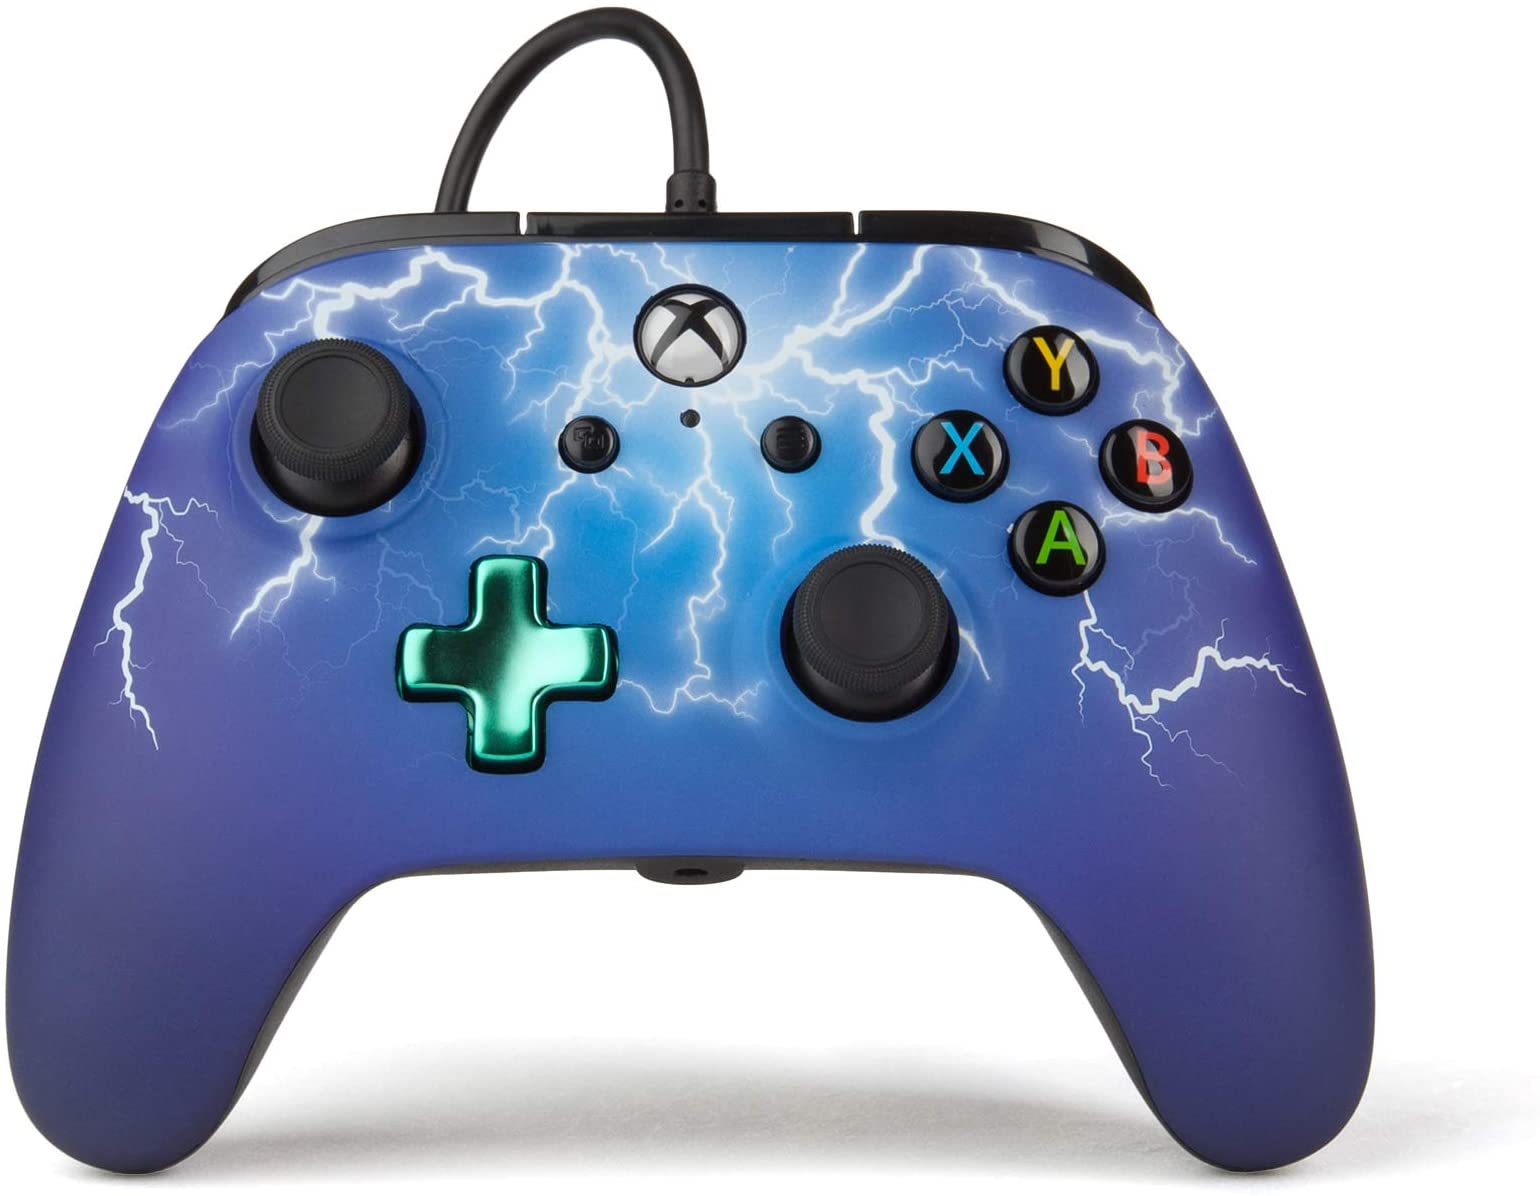 ef41c2f3e6c917 Amazon.com  PowerA Enhanced Wired Controller for Xbox One - Spider ...